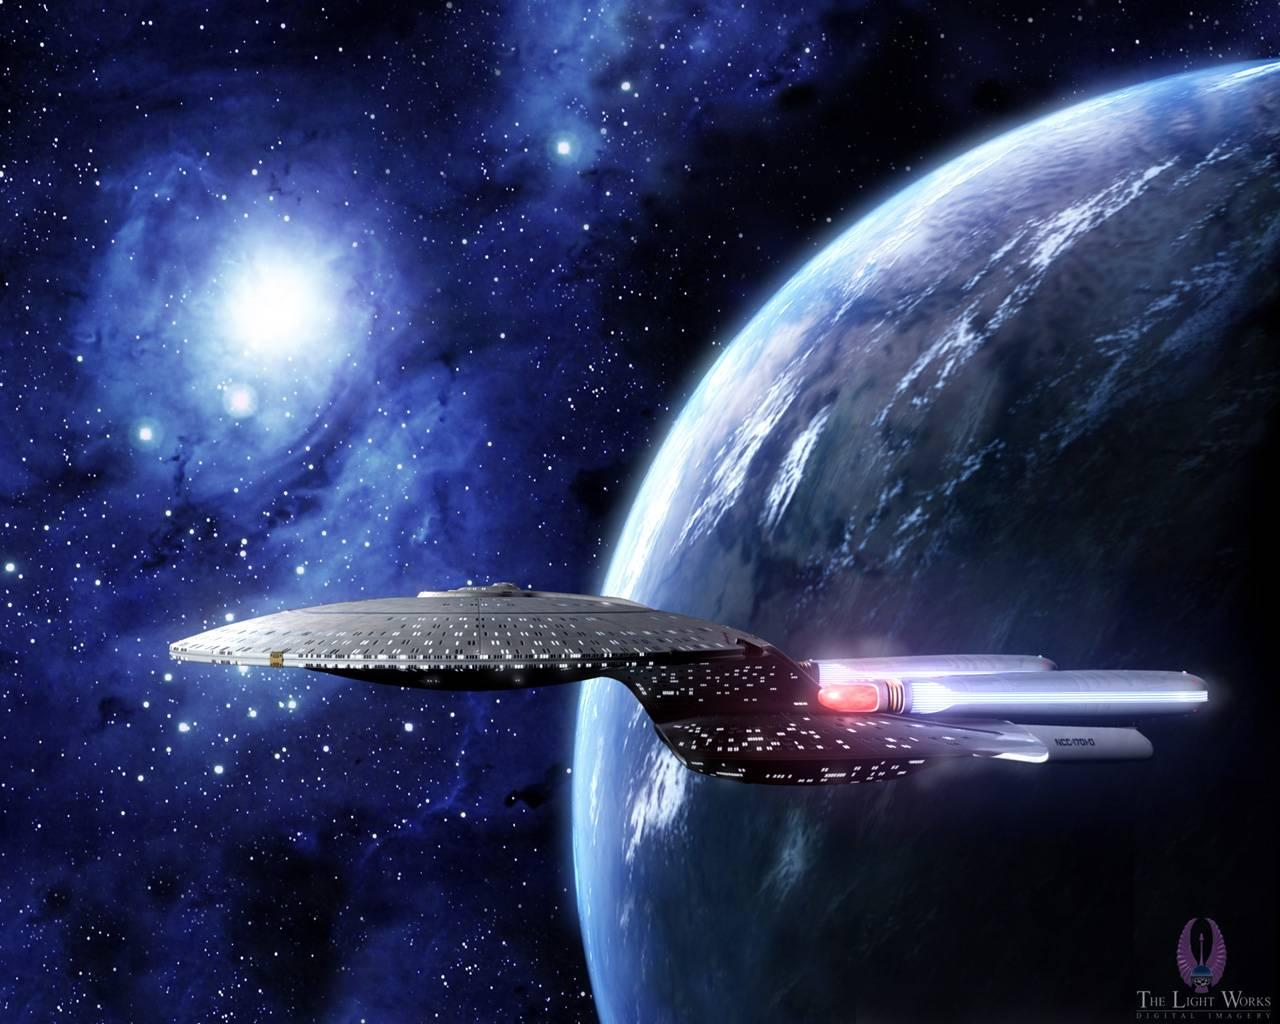 USS JAMES T. KIRK